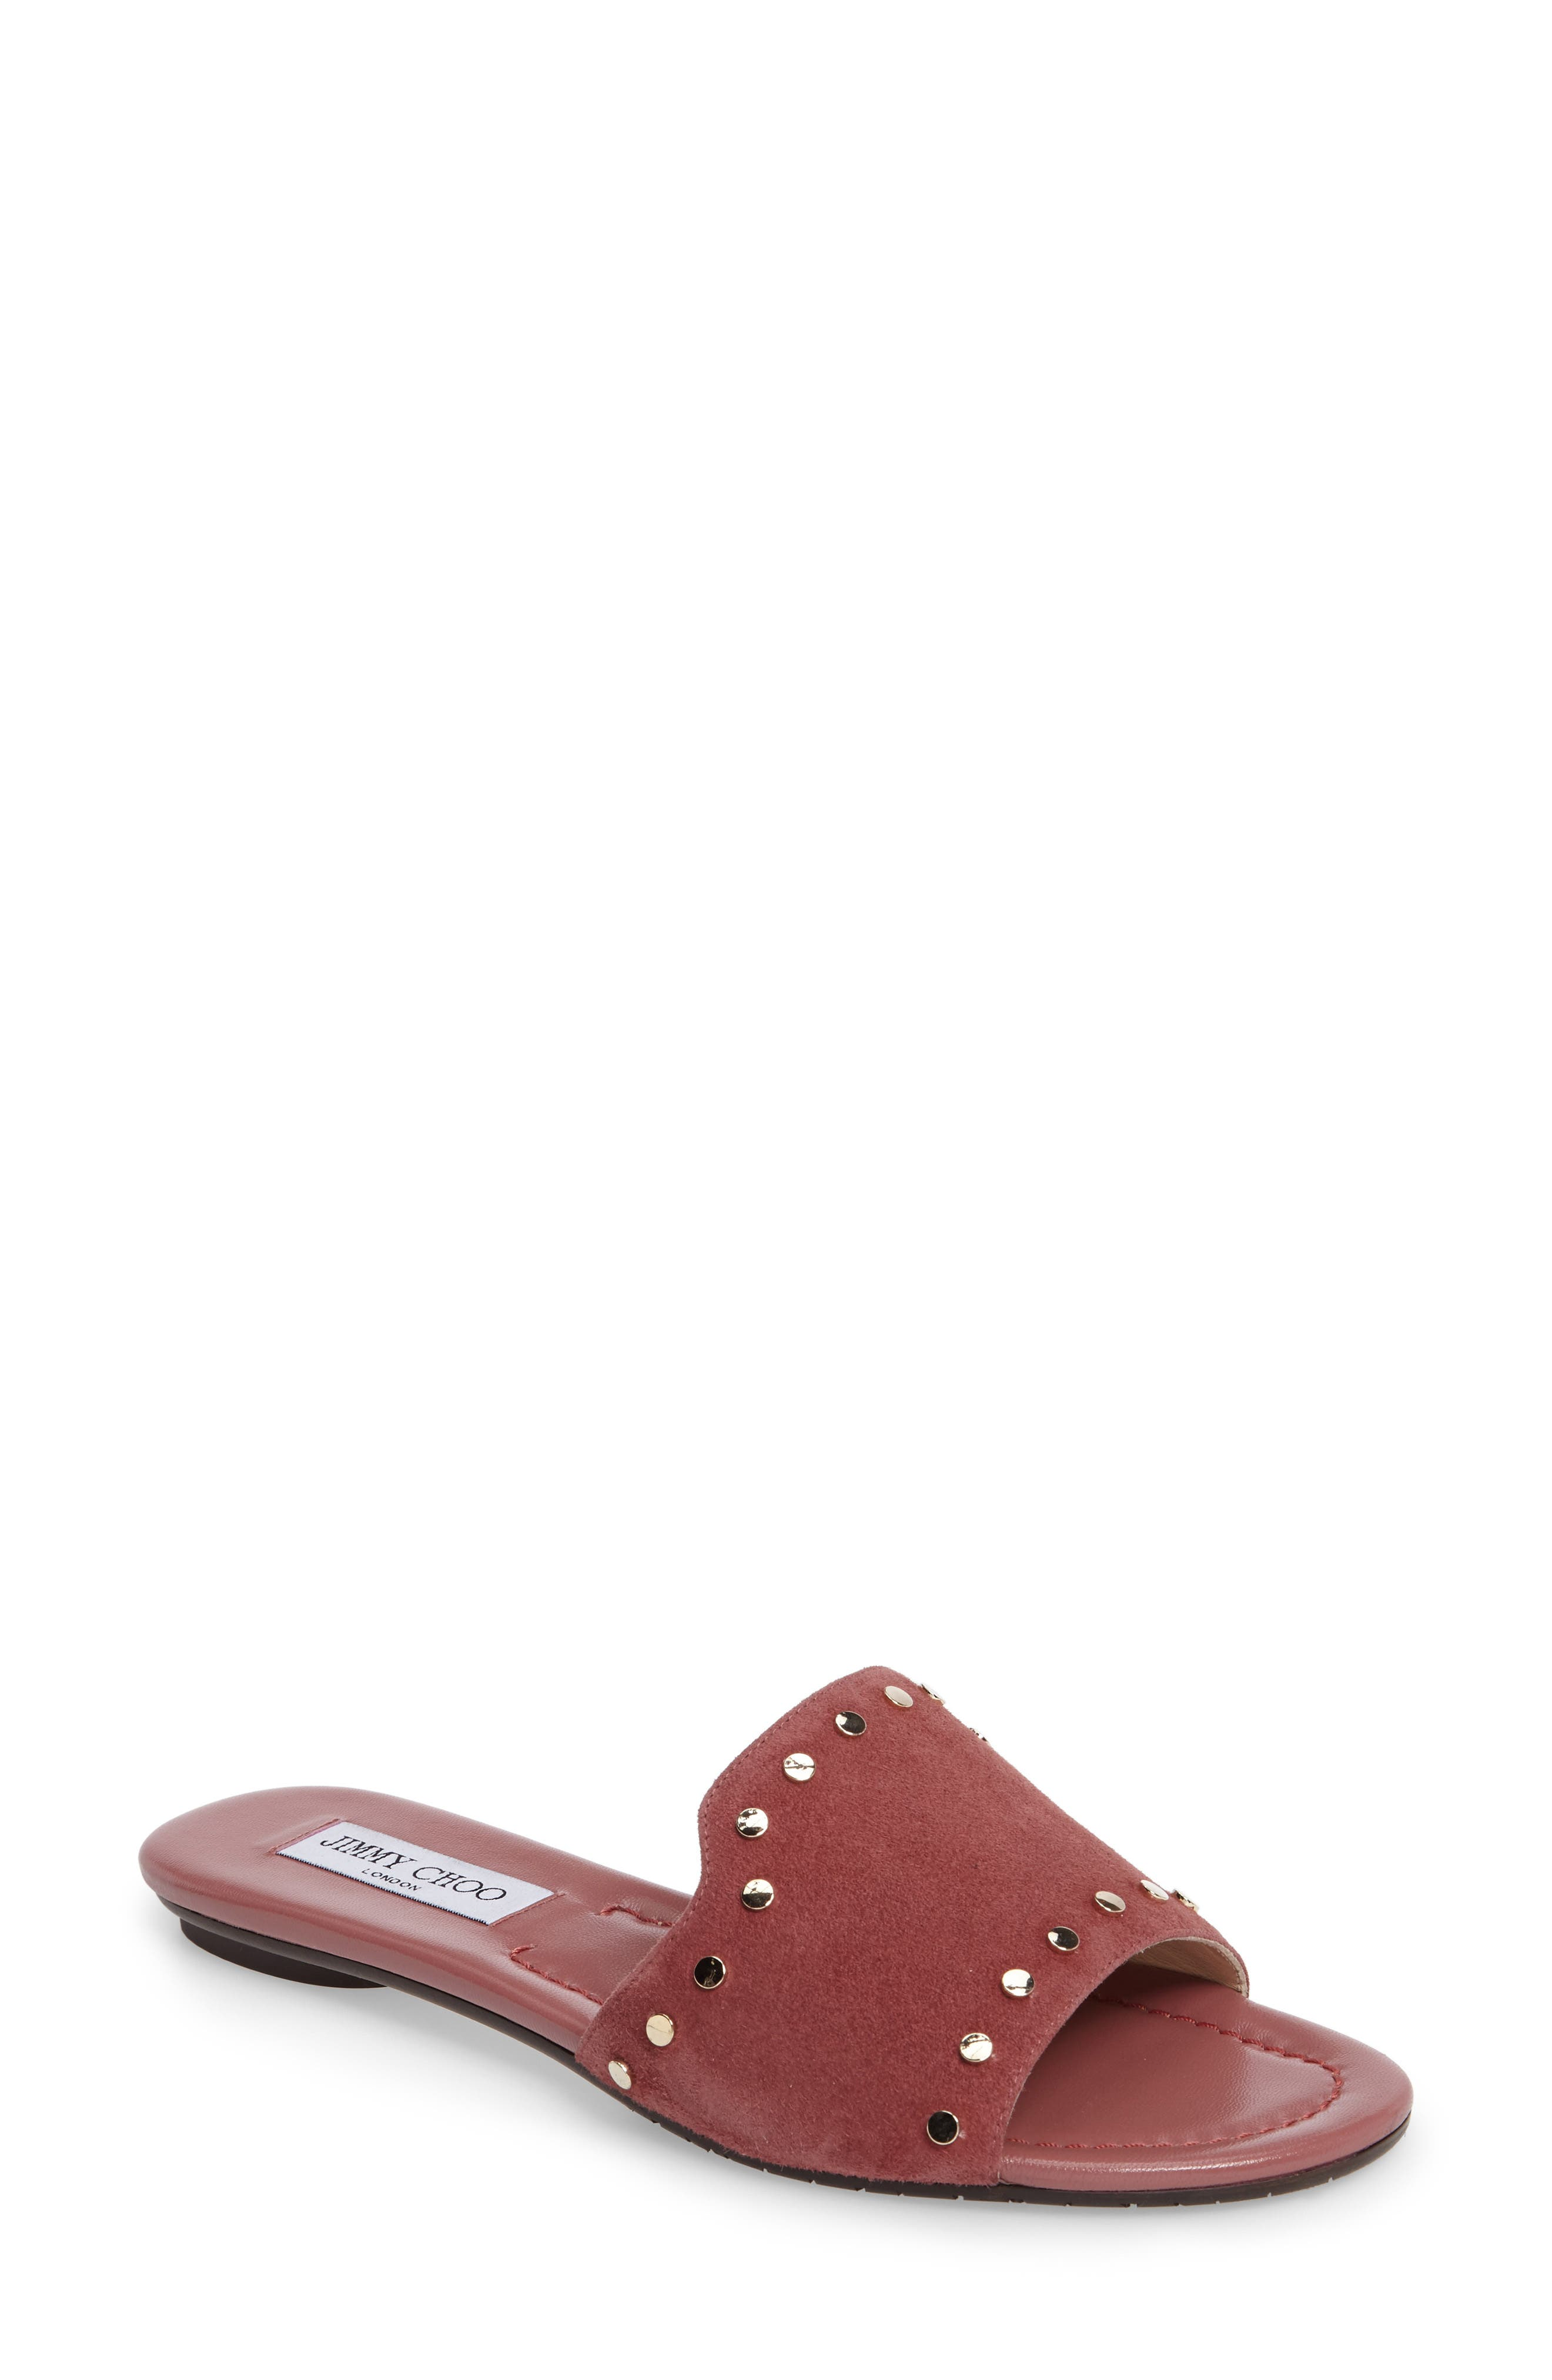 Jimmy Choo Nanda Sandal (Women)